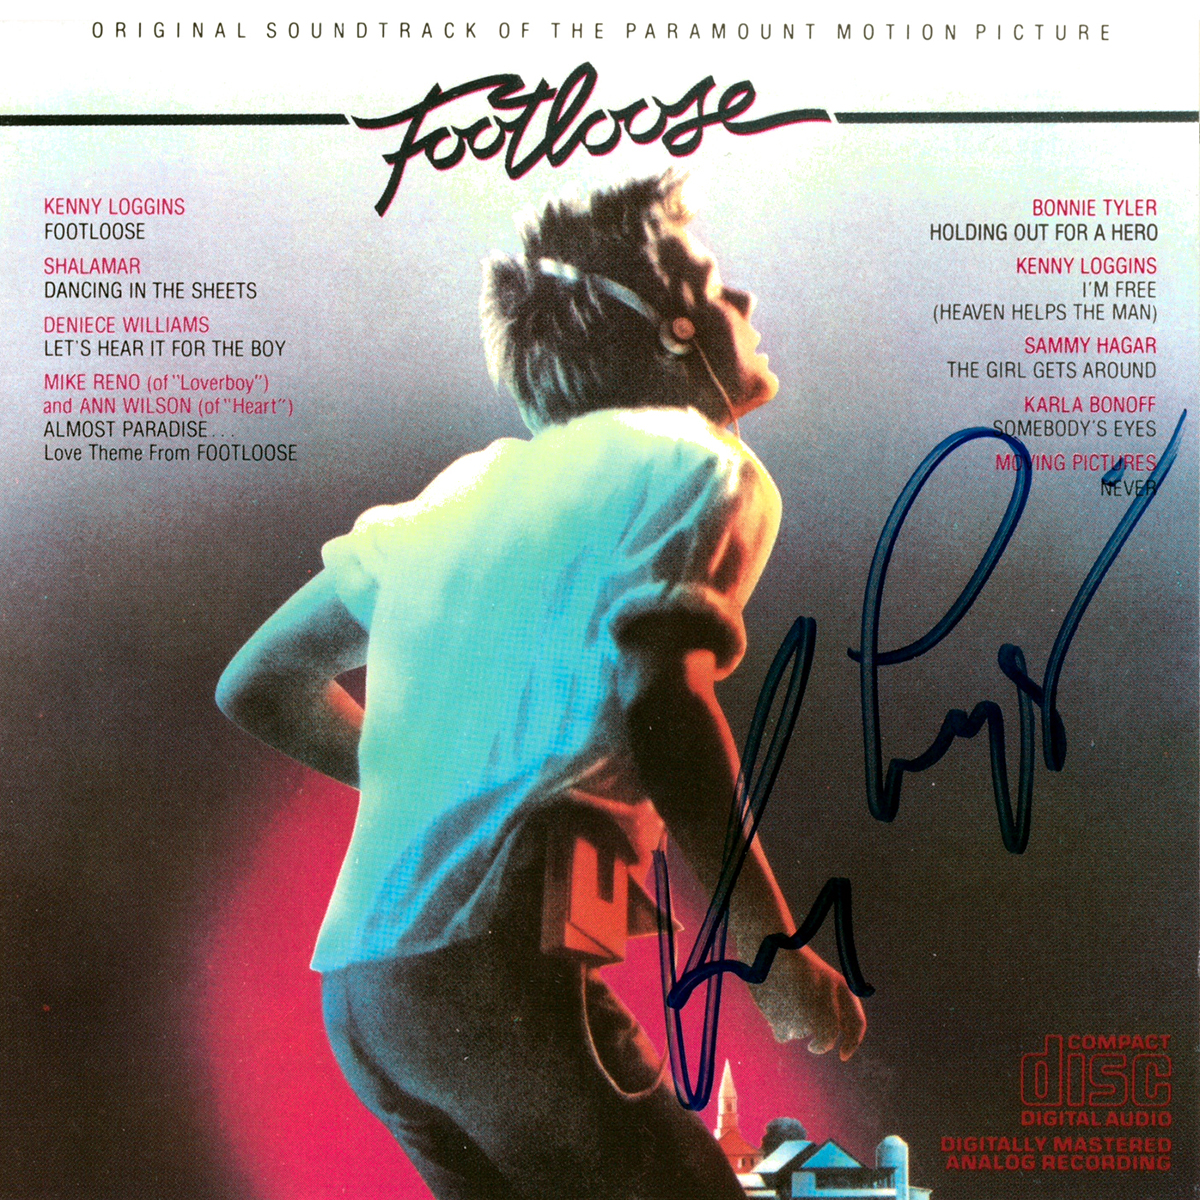 CD - Kenny Loggins - Footloose